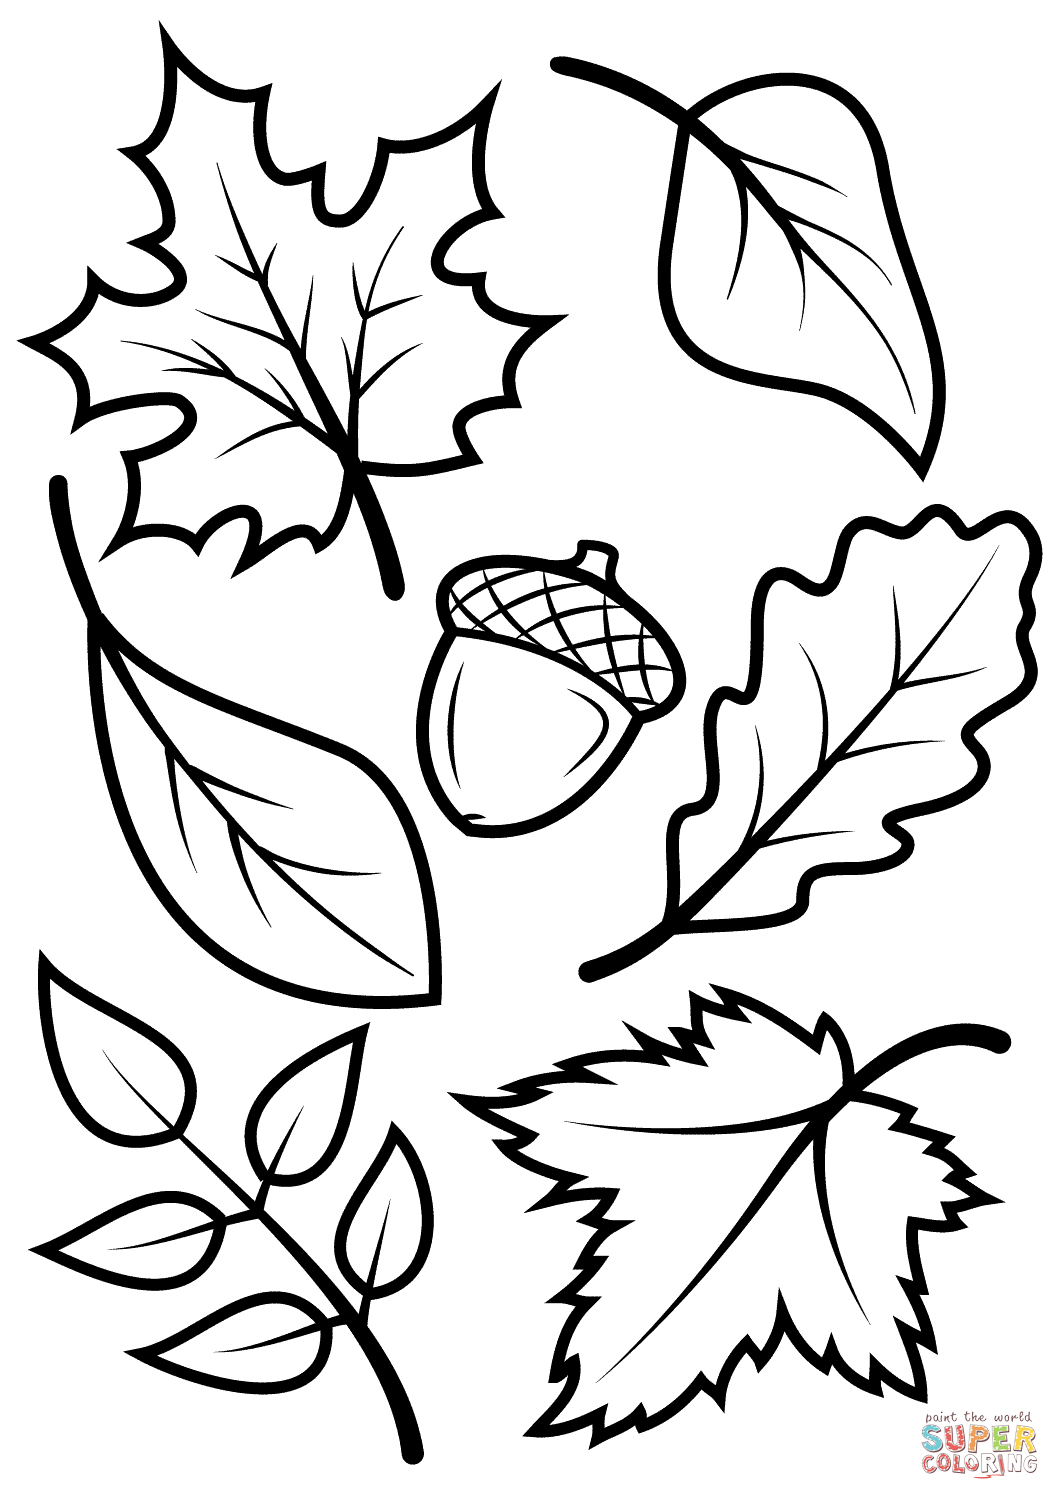 Fall Leaves And Acorn Coloring Page | Free Printable Coloring Pages - Fall Leaves Pictures Free Printable